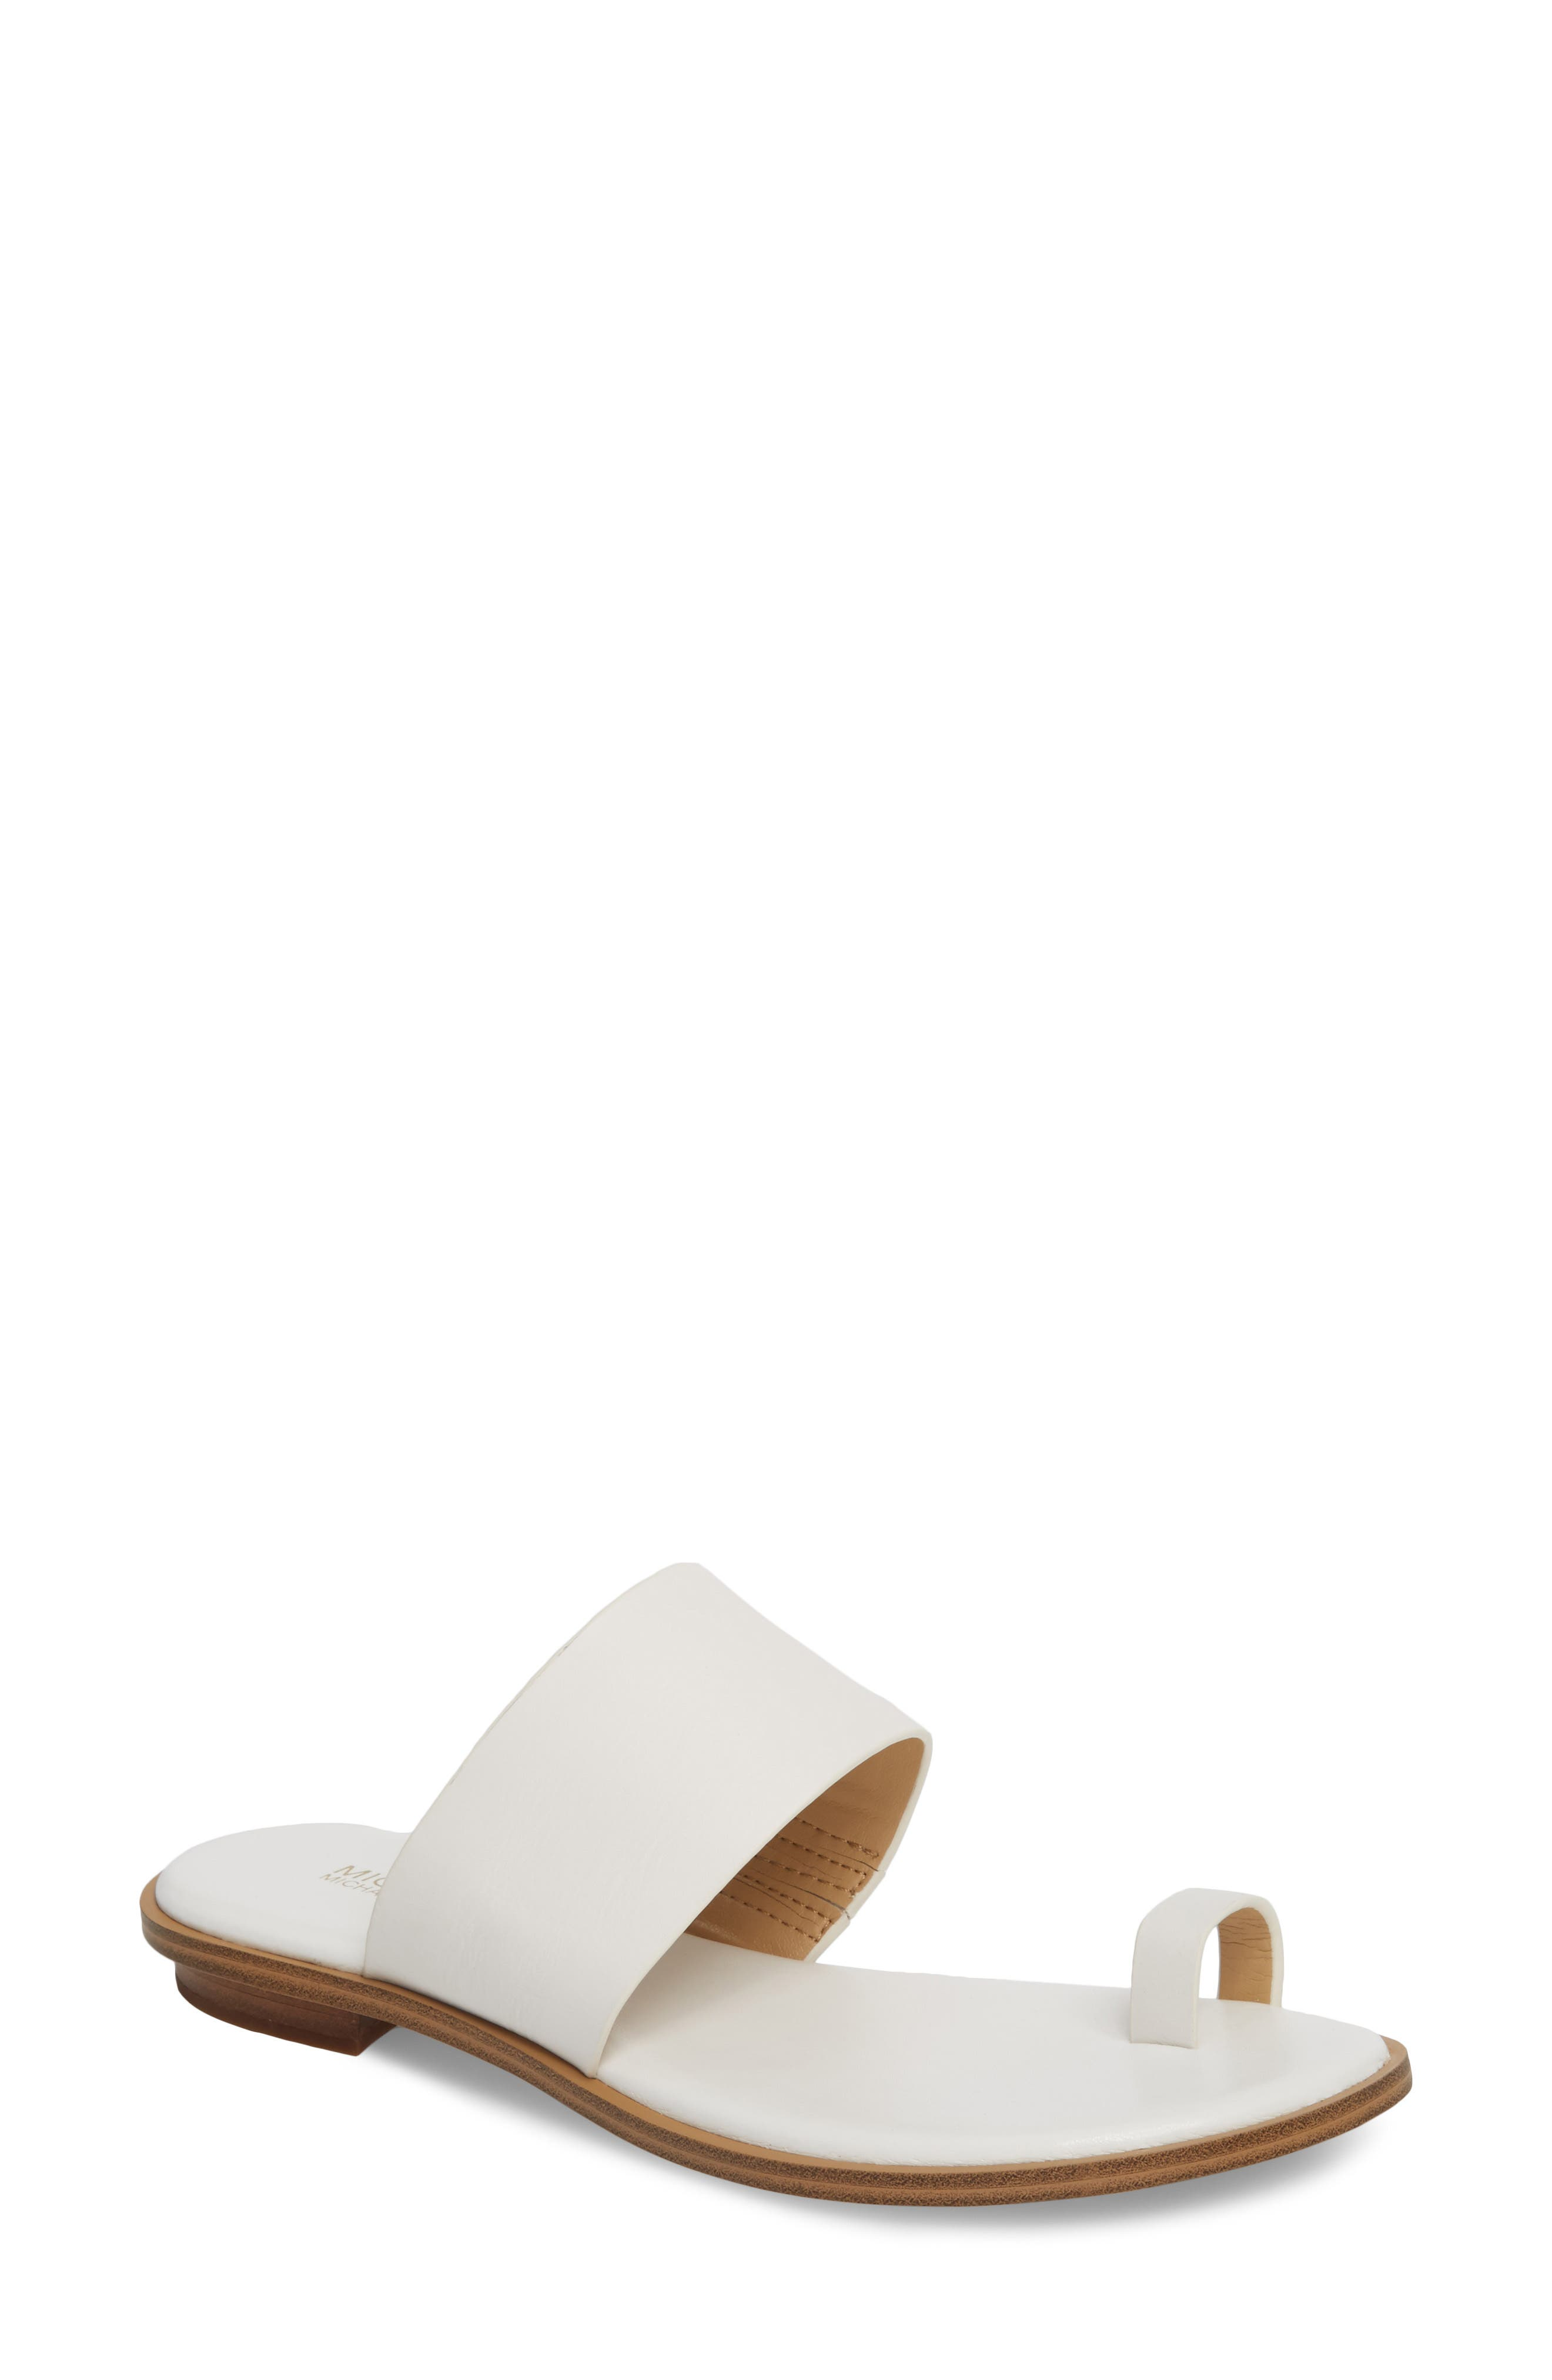 Sonya Sandal,                             Main thumbnail 1, color,                             Optic White Leather